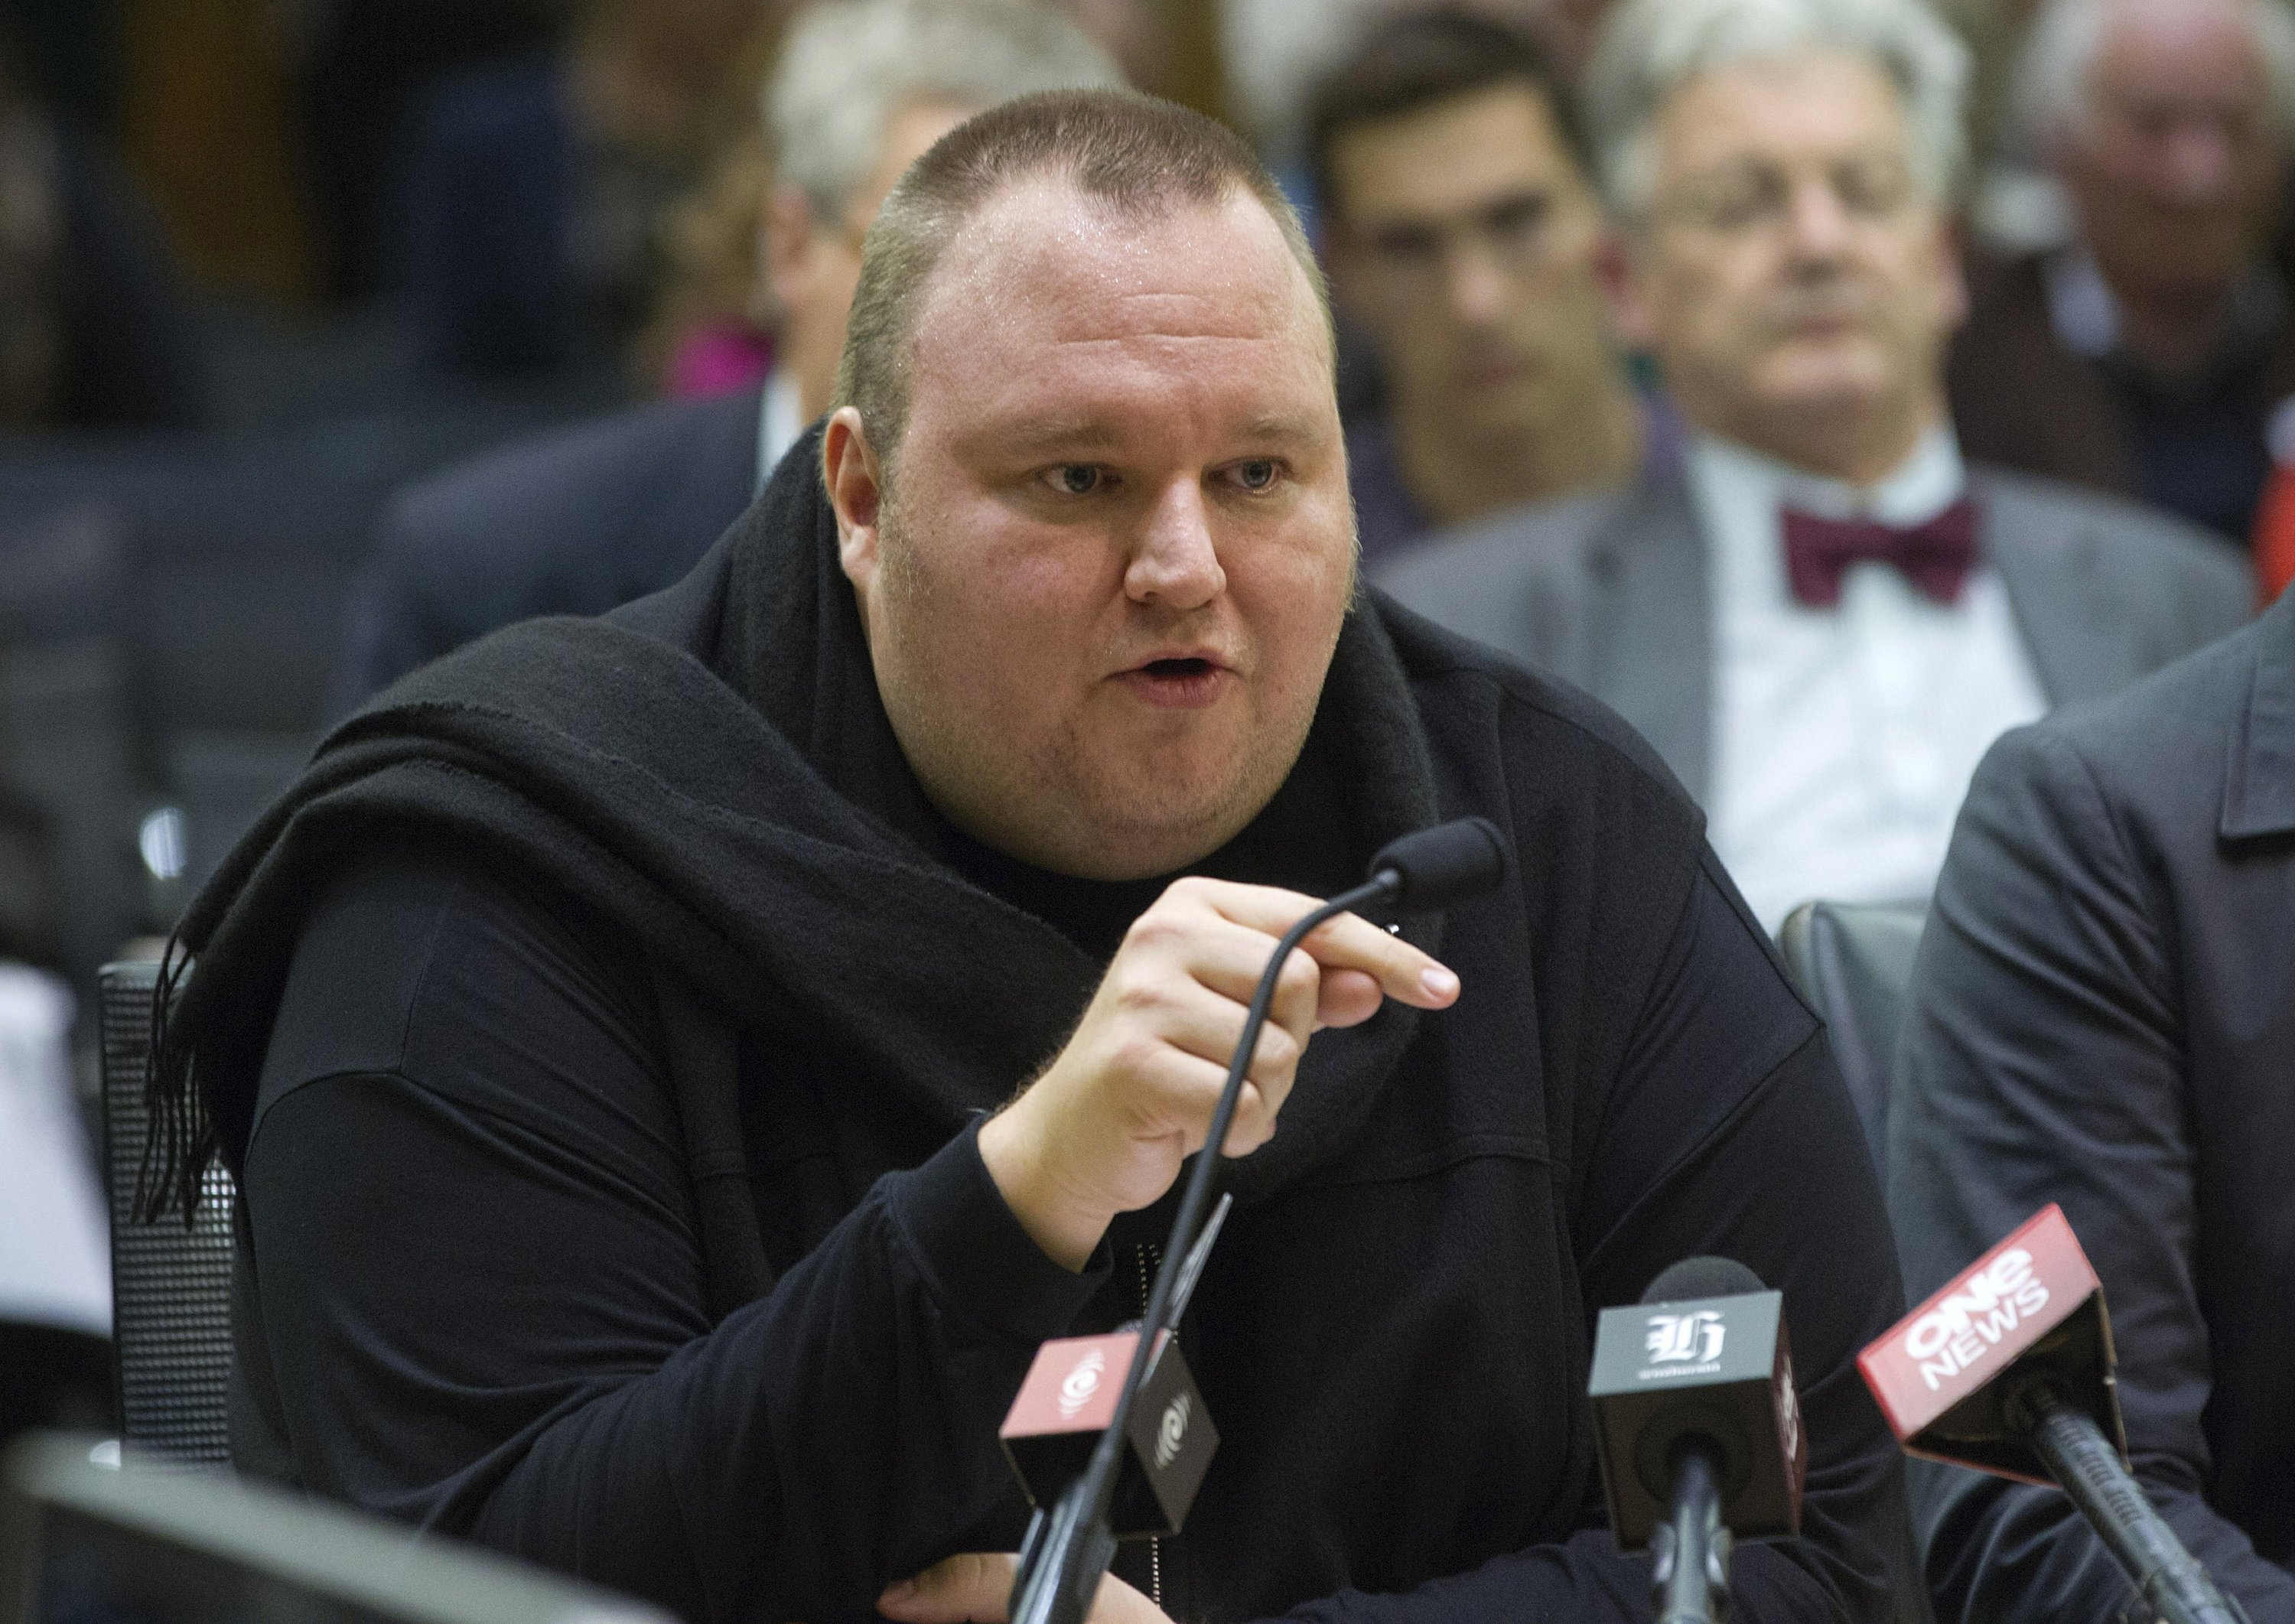 Kim Dotcom fights US extradition in New Zealand's top court